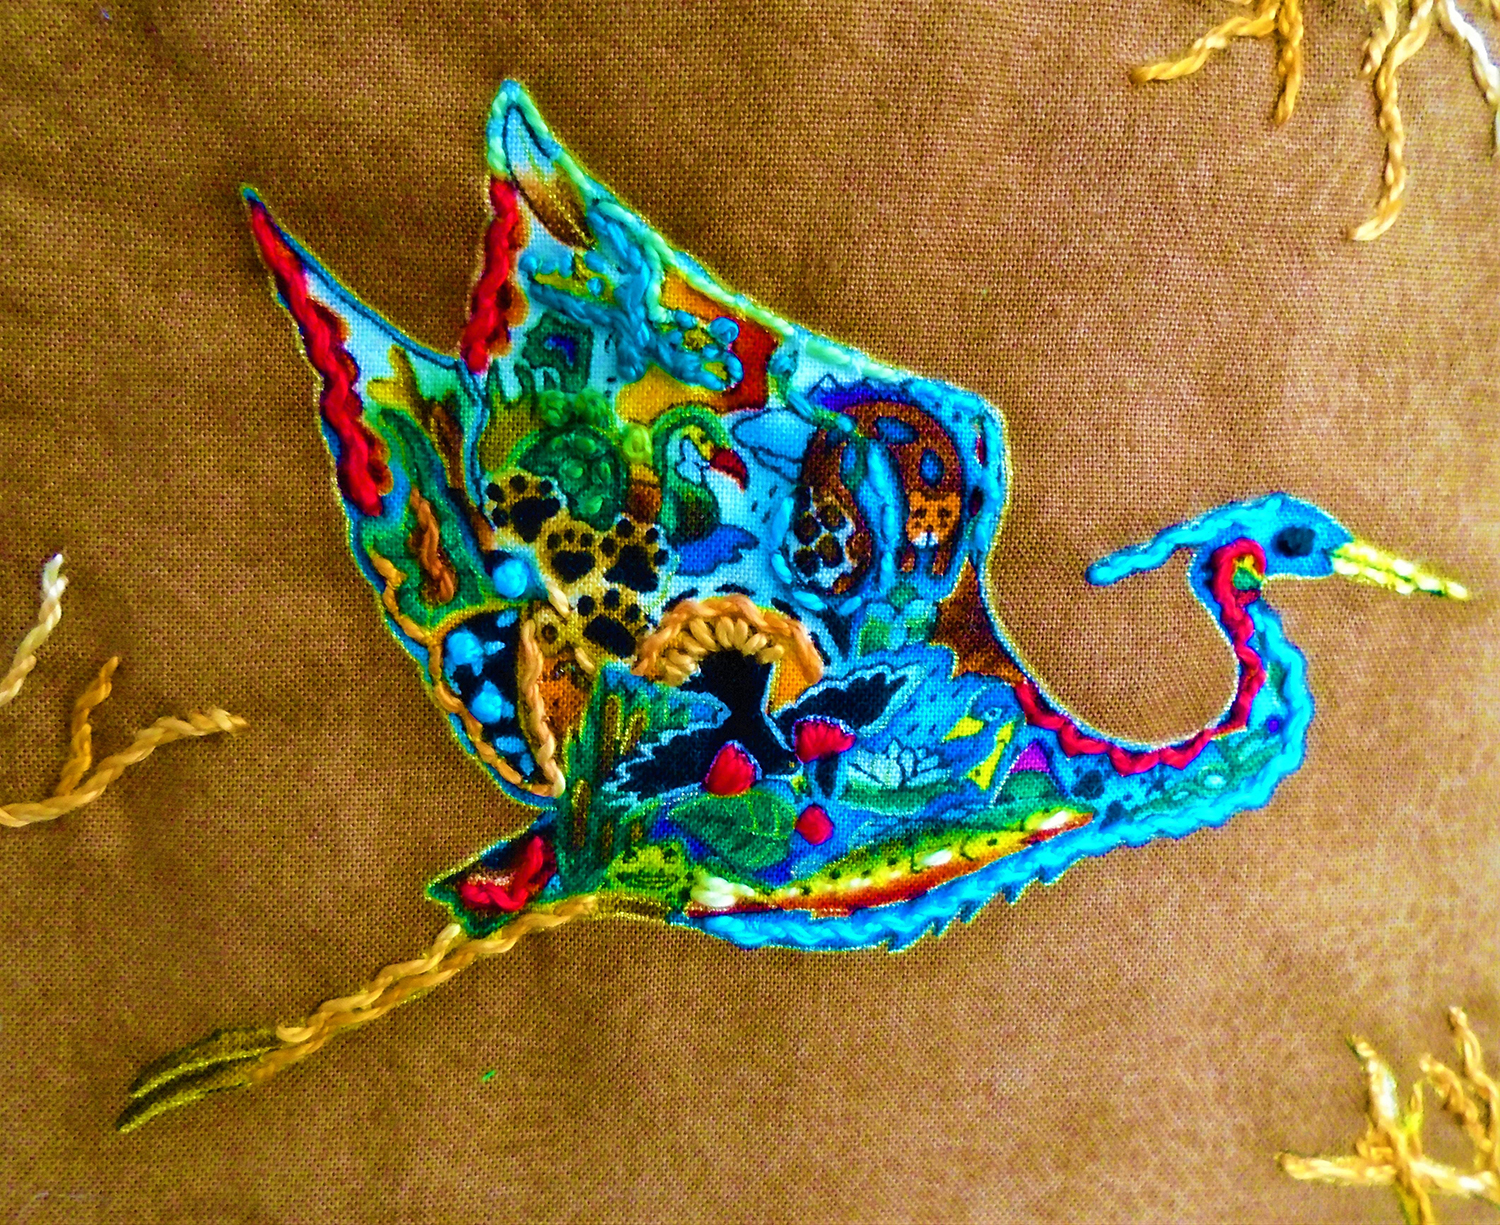 Detail of embroidered heron motif shows the the tiny patterns that comprise it